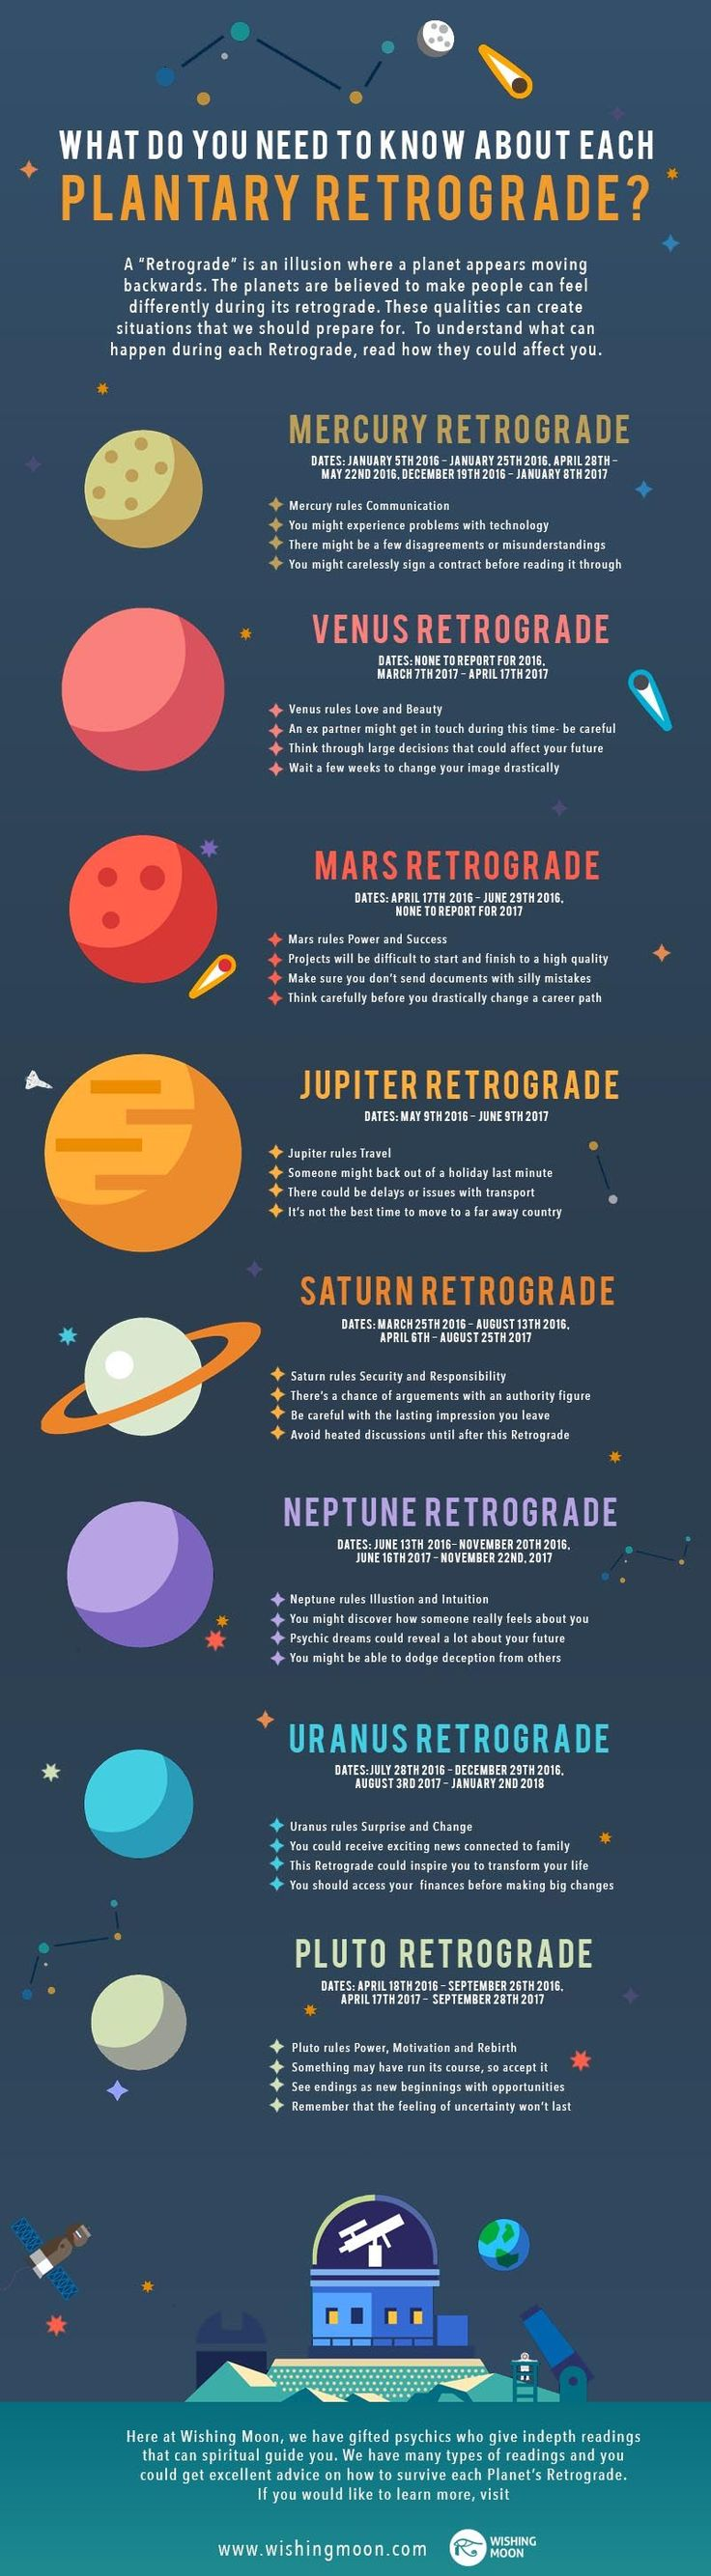 Everything you need to know about the various planetary retrogrades | Mars Retrograde | Jupiter Retrograde | Mercury Retrograde | Neptune Retrograde